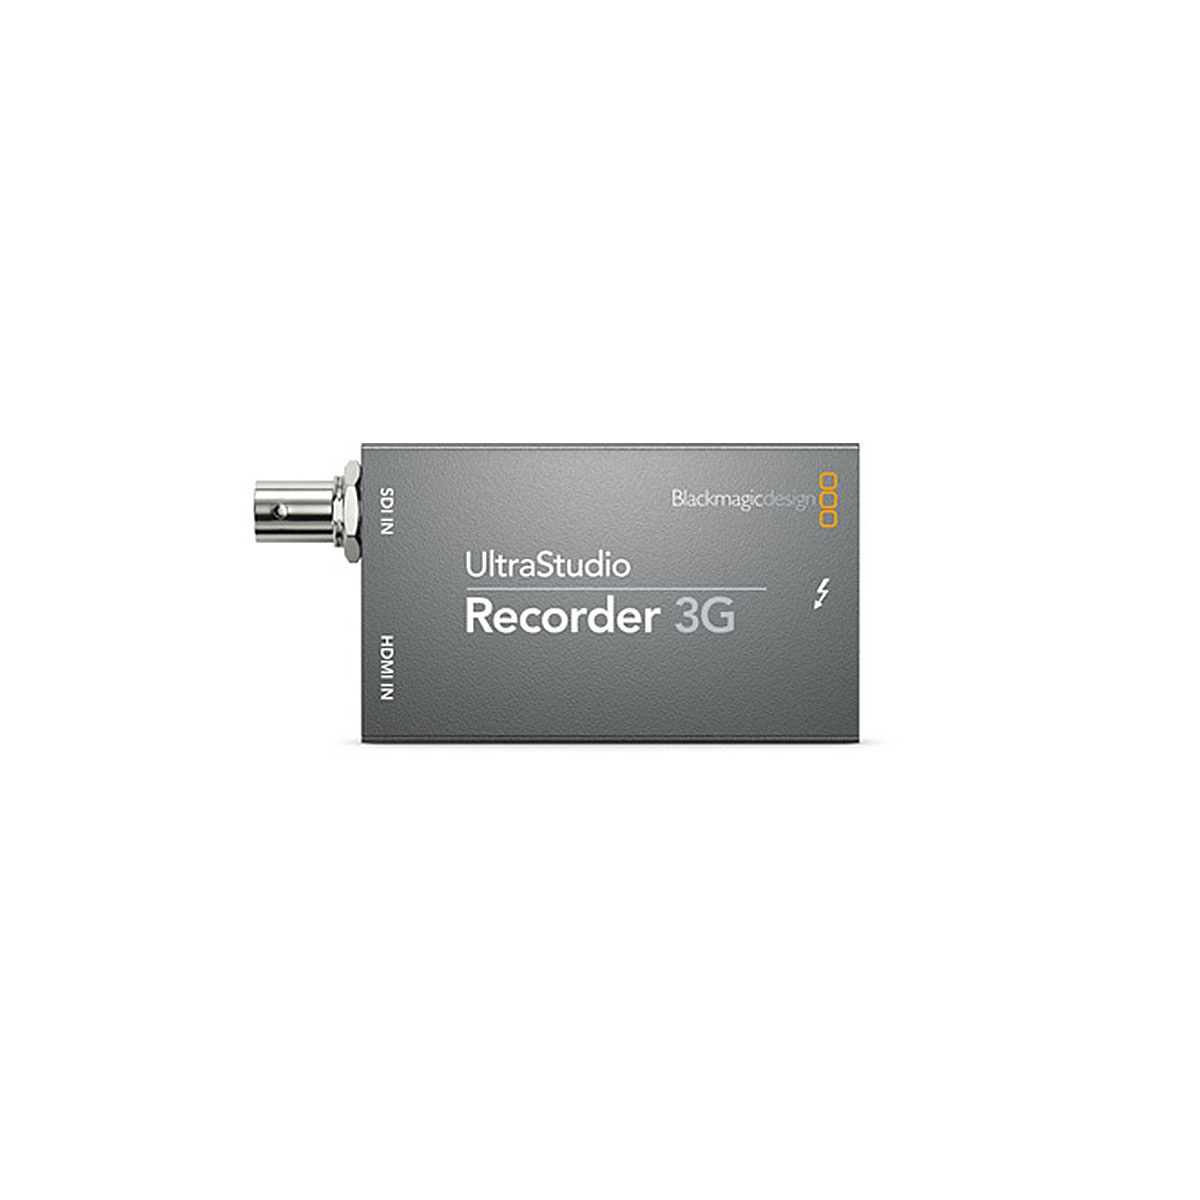 Blackmagic UltraStudio Recorder 3G